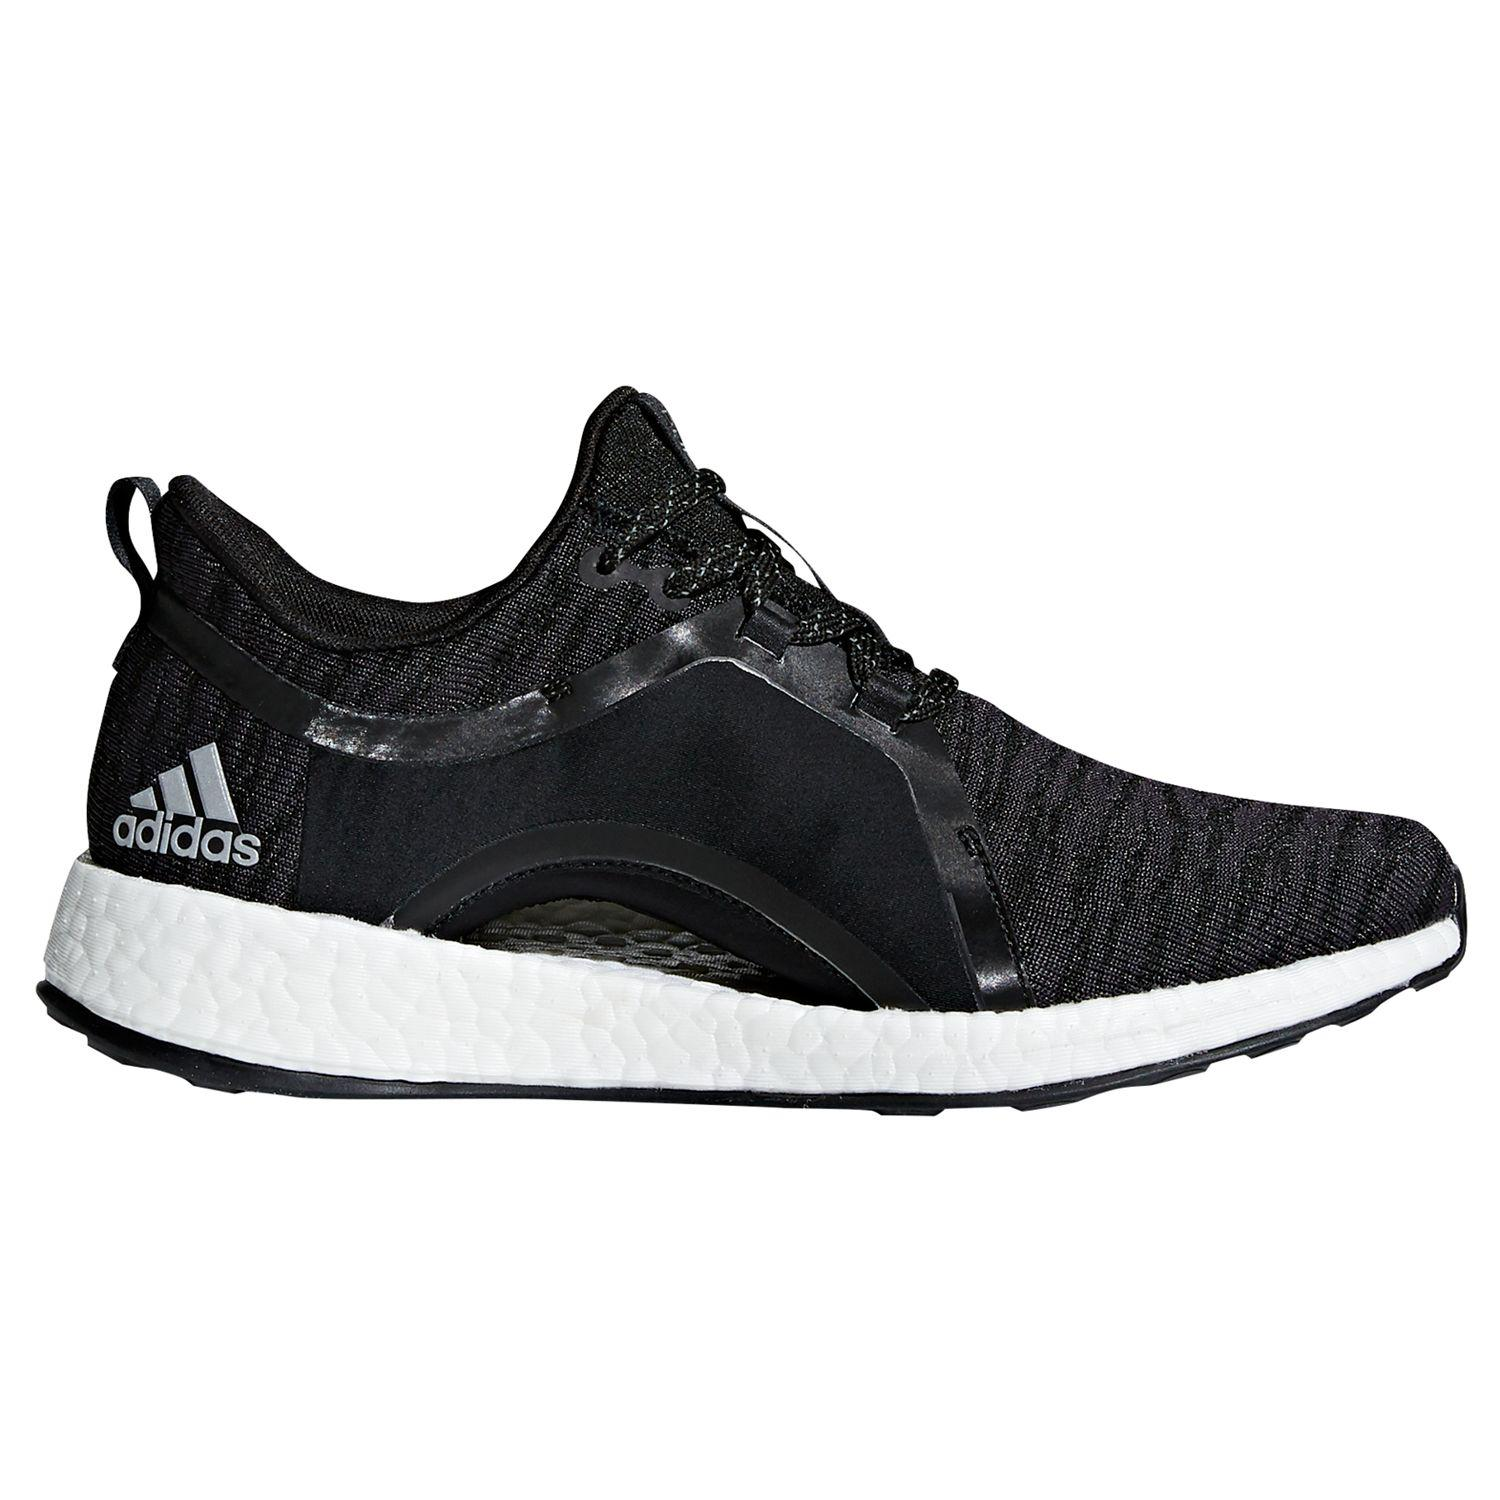 d1643293ce38b7 adidas Pure Boost X Women s Running Shoes in Black - Lyst